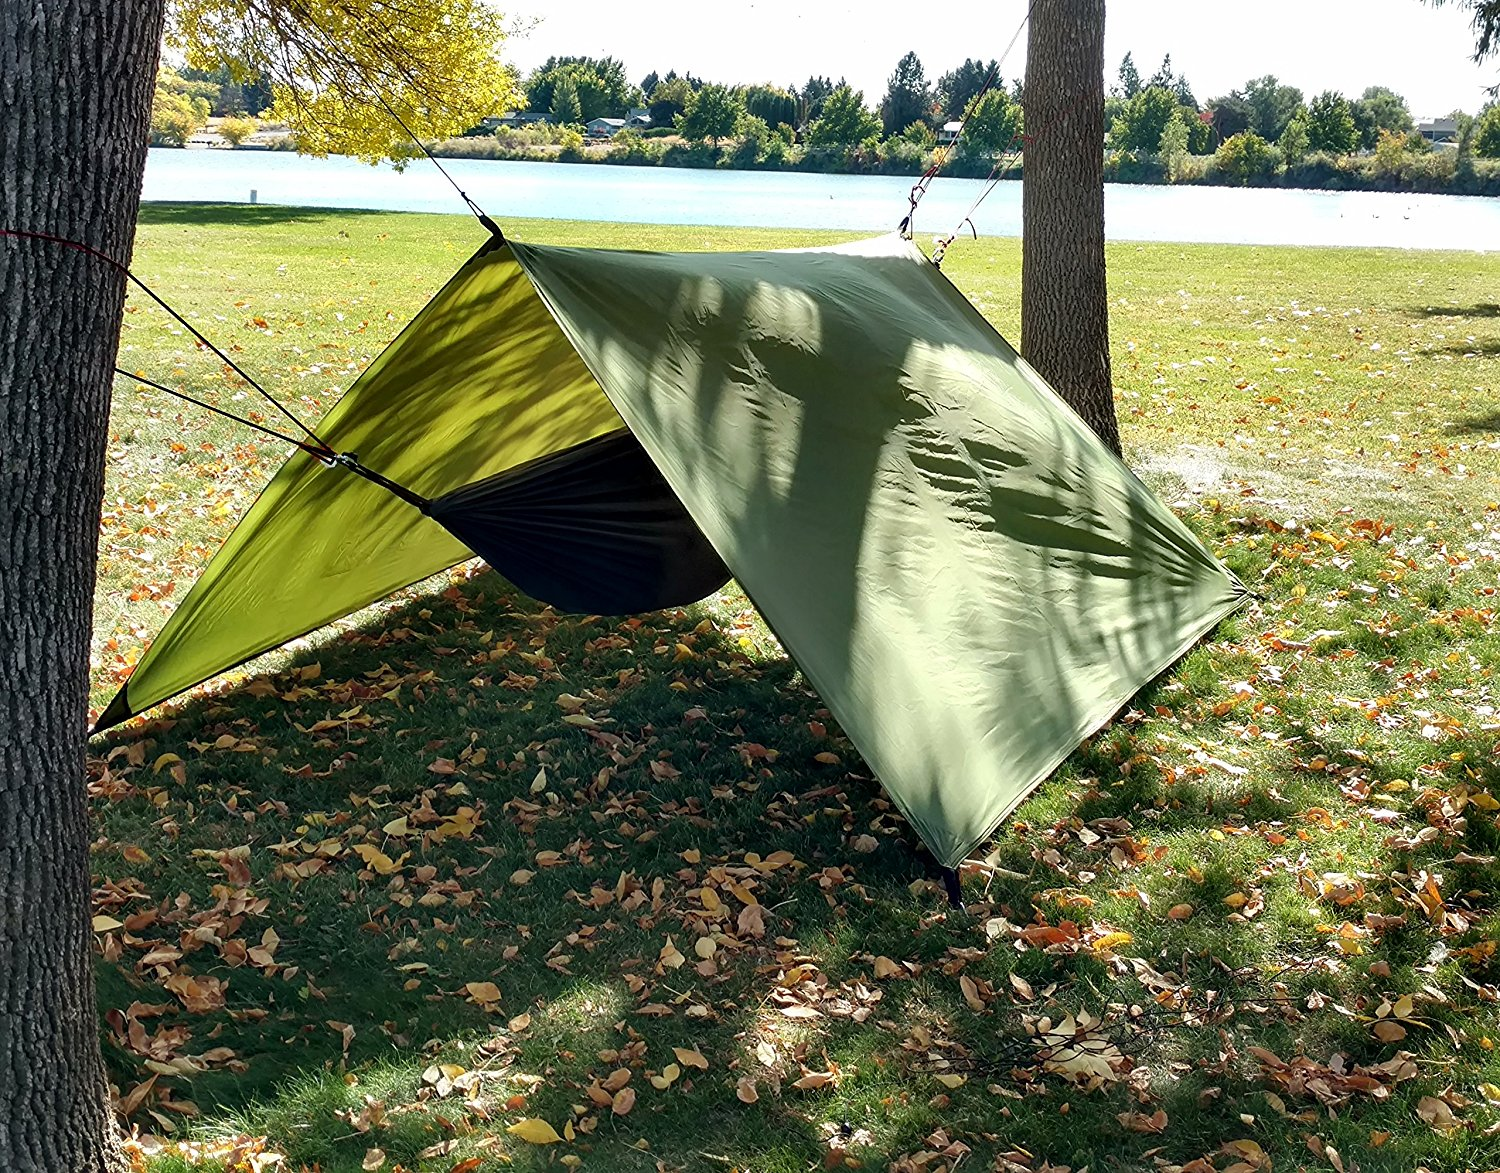 hammock rain fly hammock tarp camping rain fly or backpacking tarp hammock rain fly hammock tarp camping rain fly or backpacking      rh   rivercountryproducts